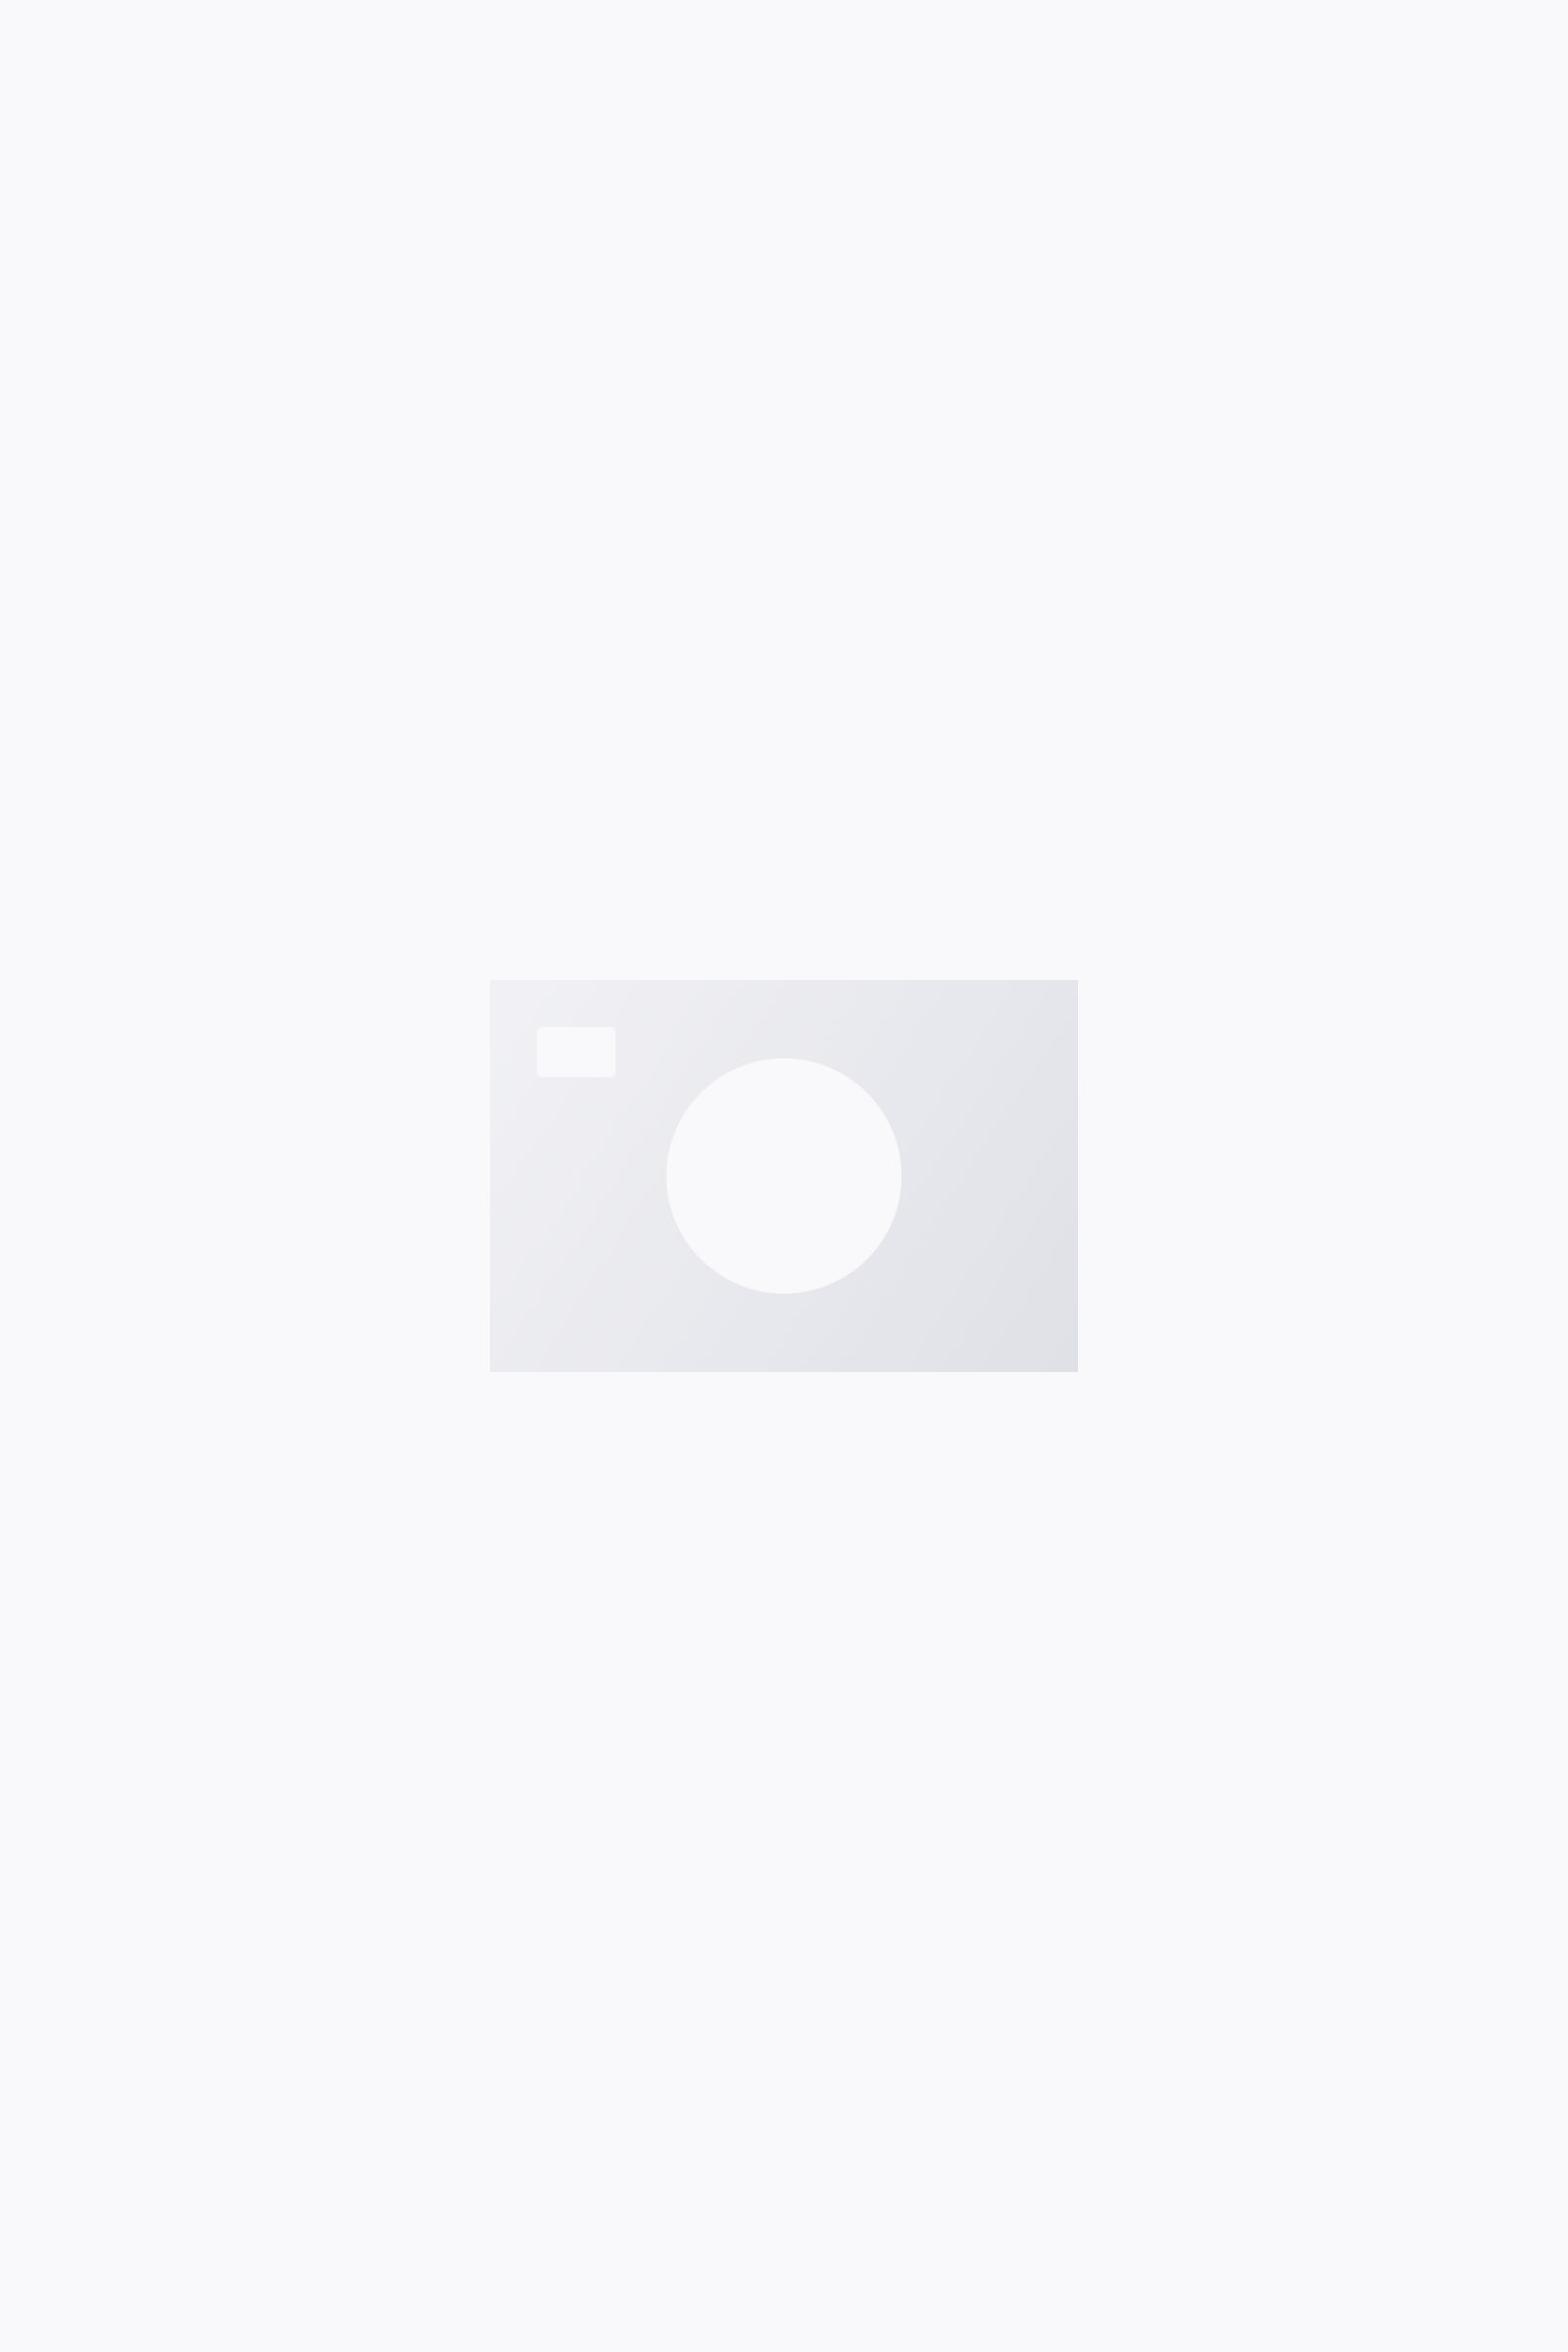 COS STRAIGHT CROPPED JEANS,grey